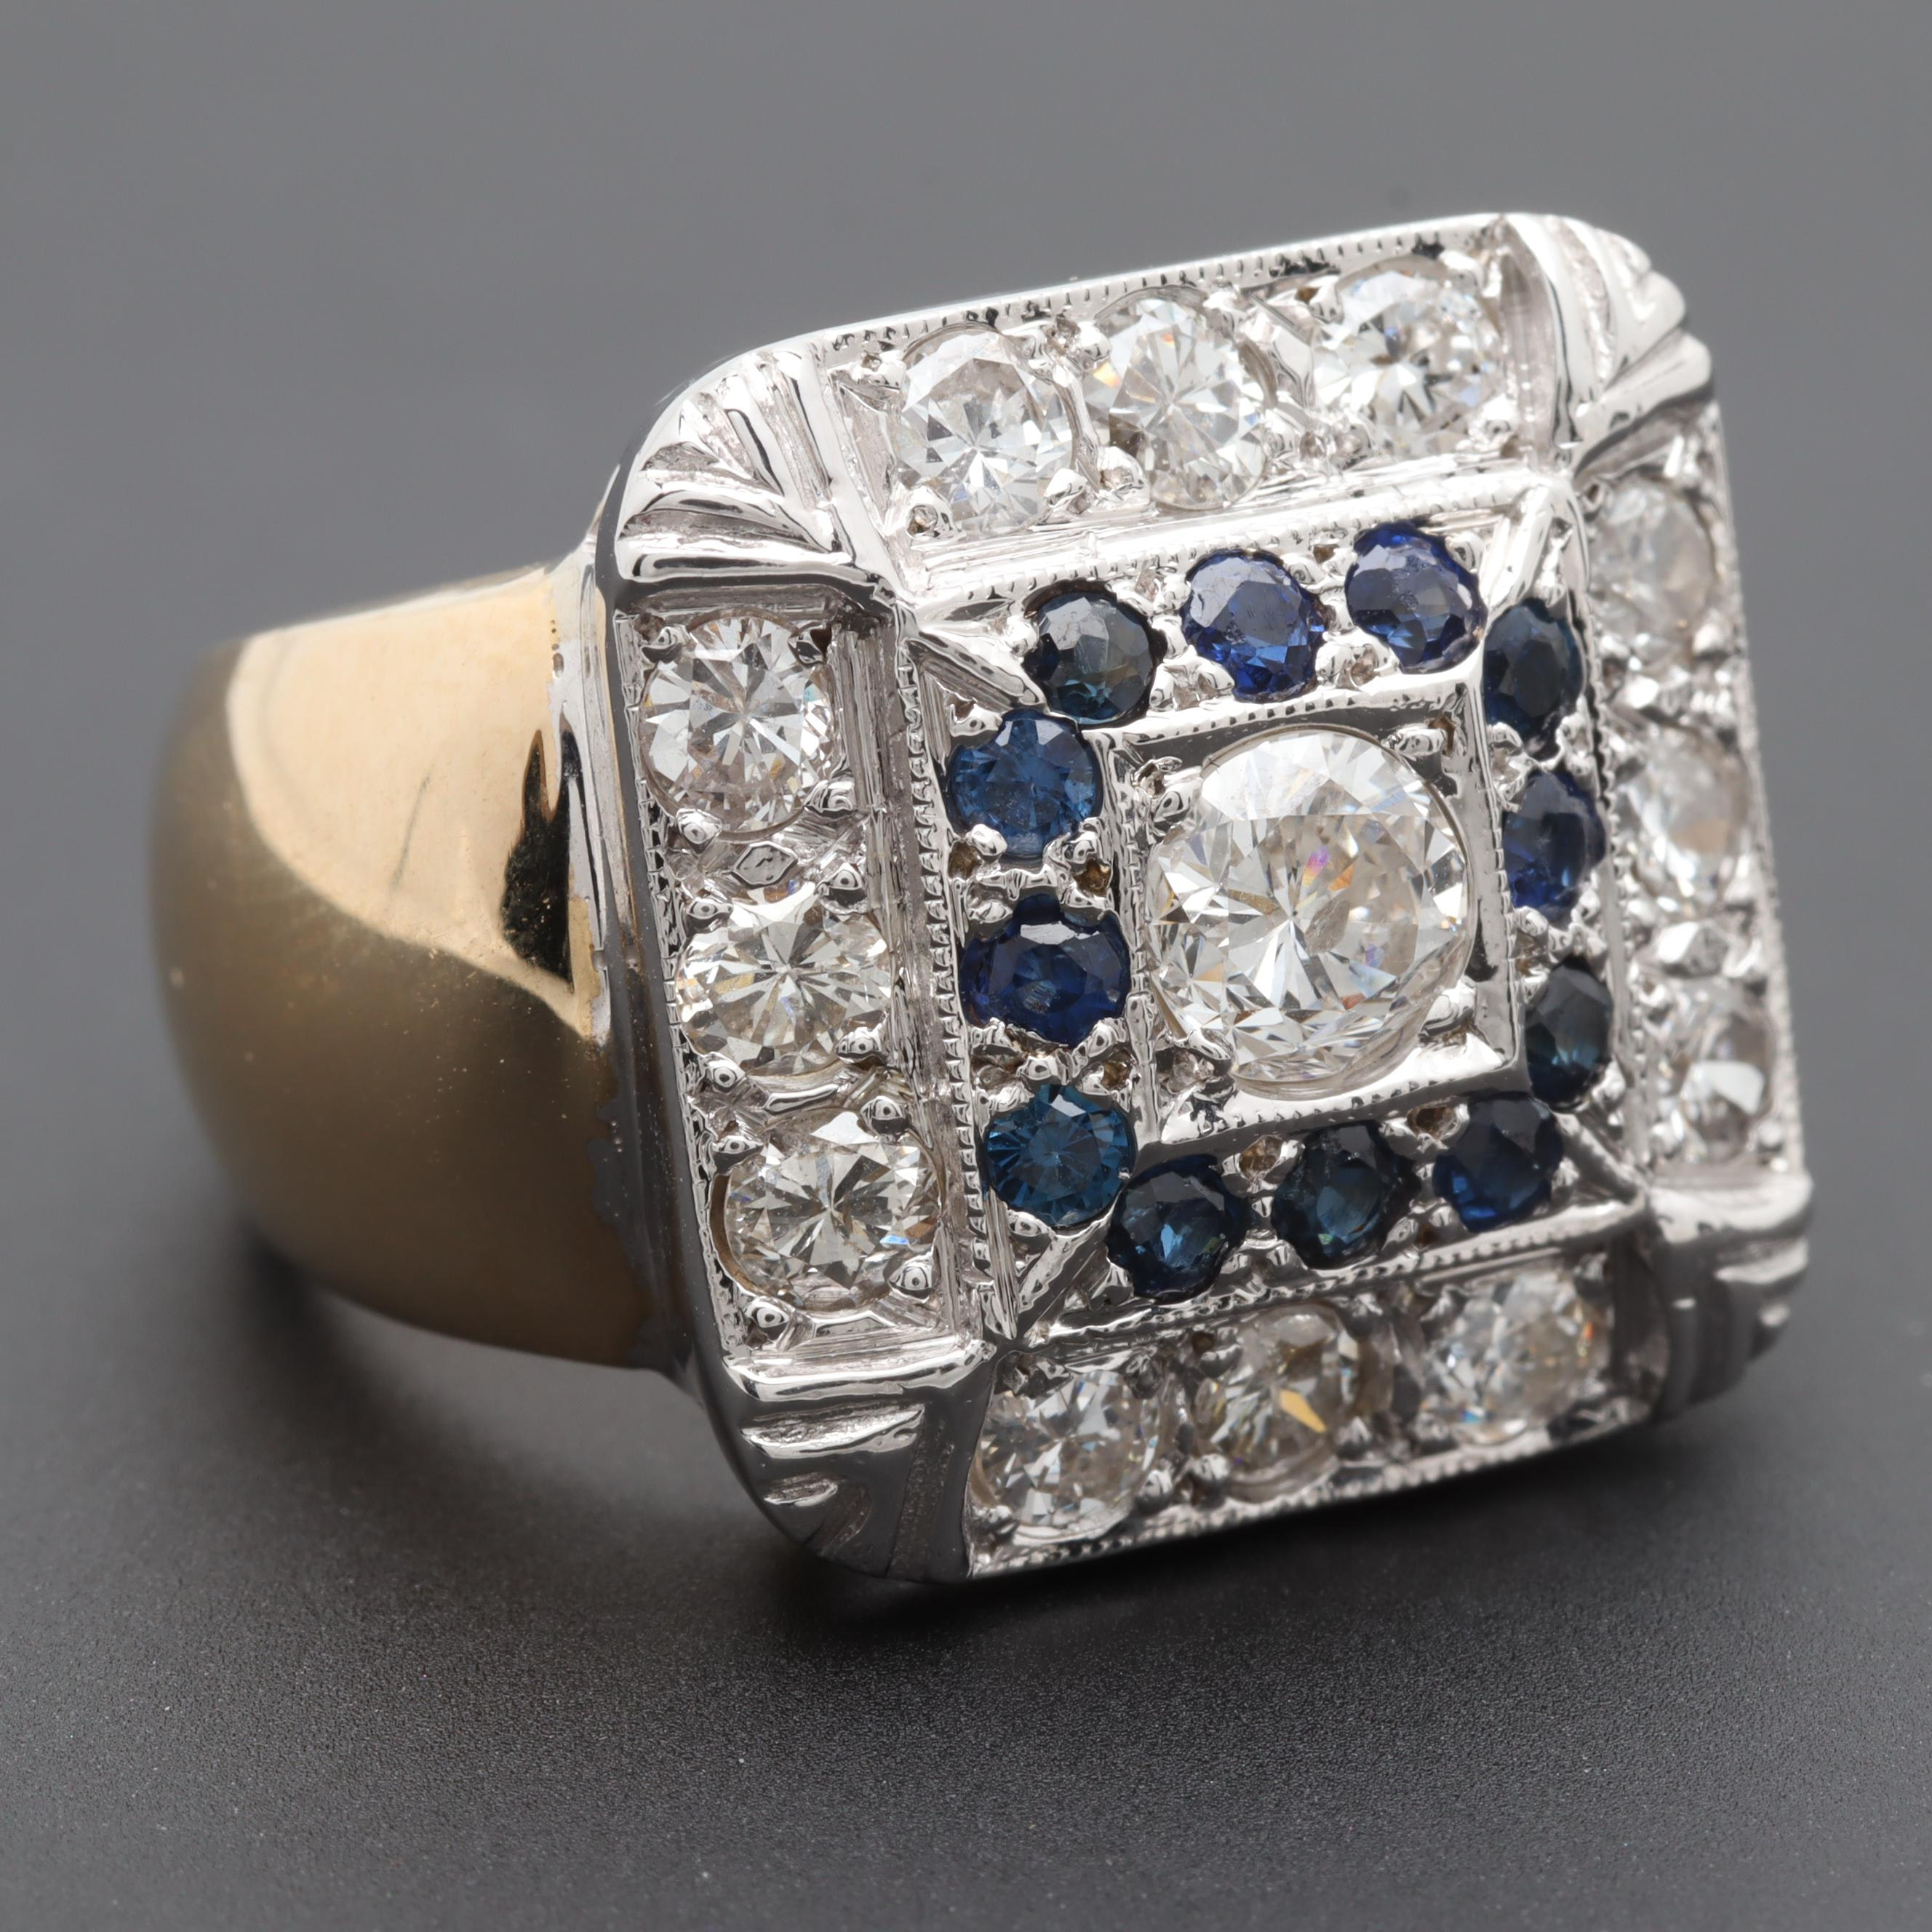 14K Yellow and White Gold 1.57 CTW Diamond and Sapphire Ring